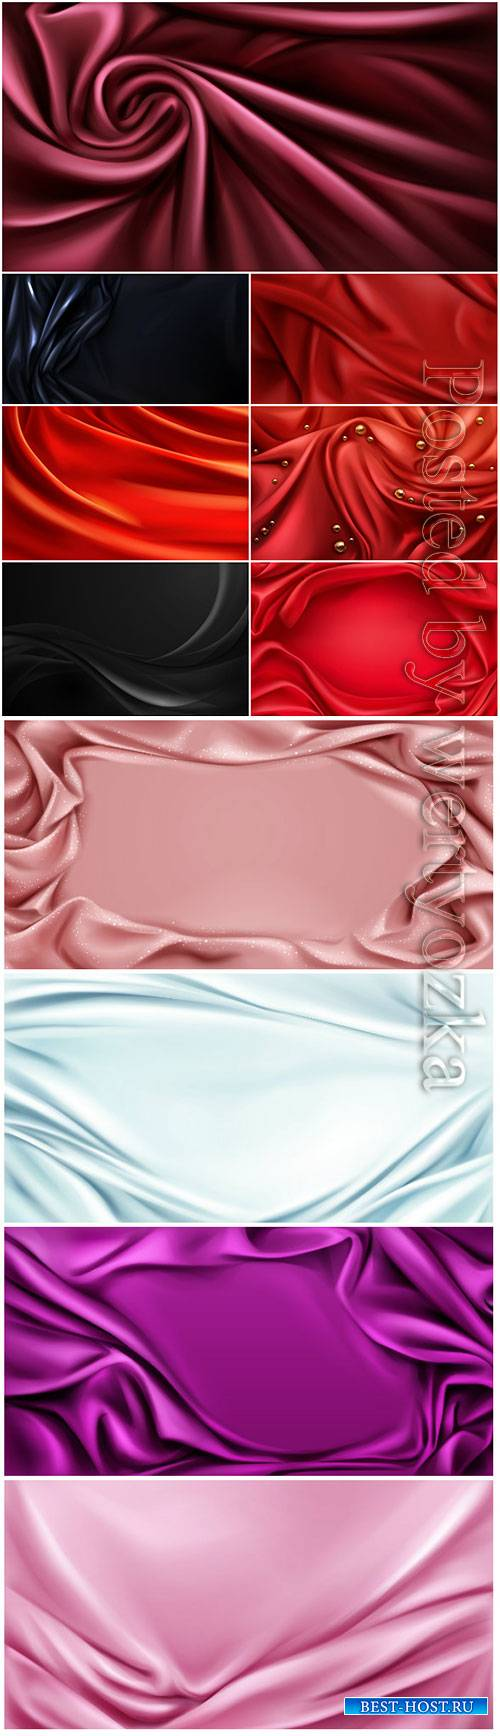 Silk folded fabric vector background luxurious cloth